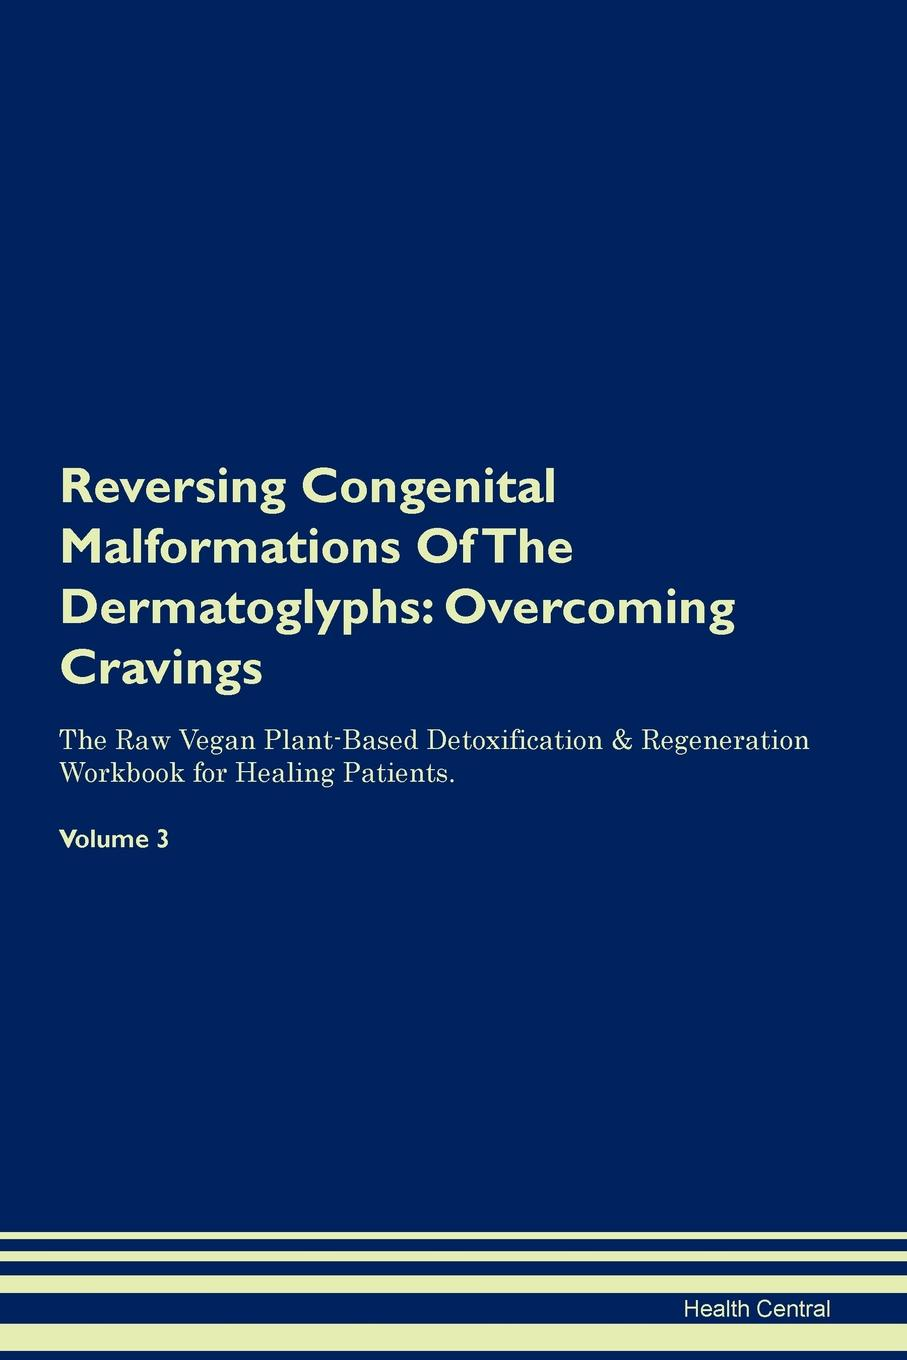 Health Central Reversing Congenital Malformations Of The Dermatoglyphs. Overcoming Cravings The Raw Vegan Plant-Based Detoxification . Regeneration Workbook for Healing Patients. Volume 3 пустышка силиконовая avent ночная scf176 18 0 6 мес 2шт голубой белый